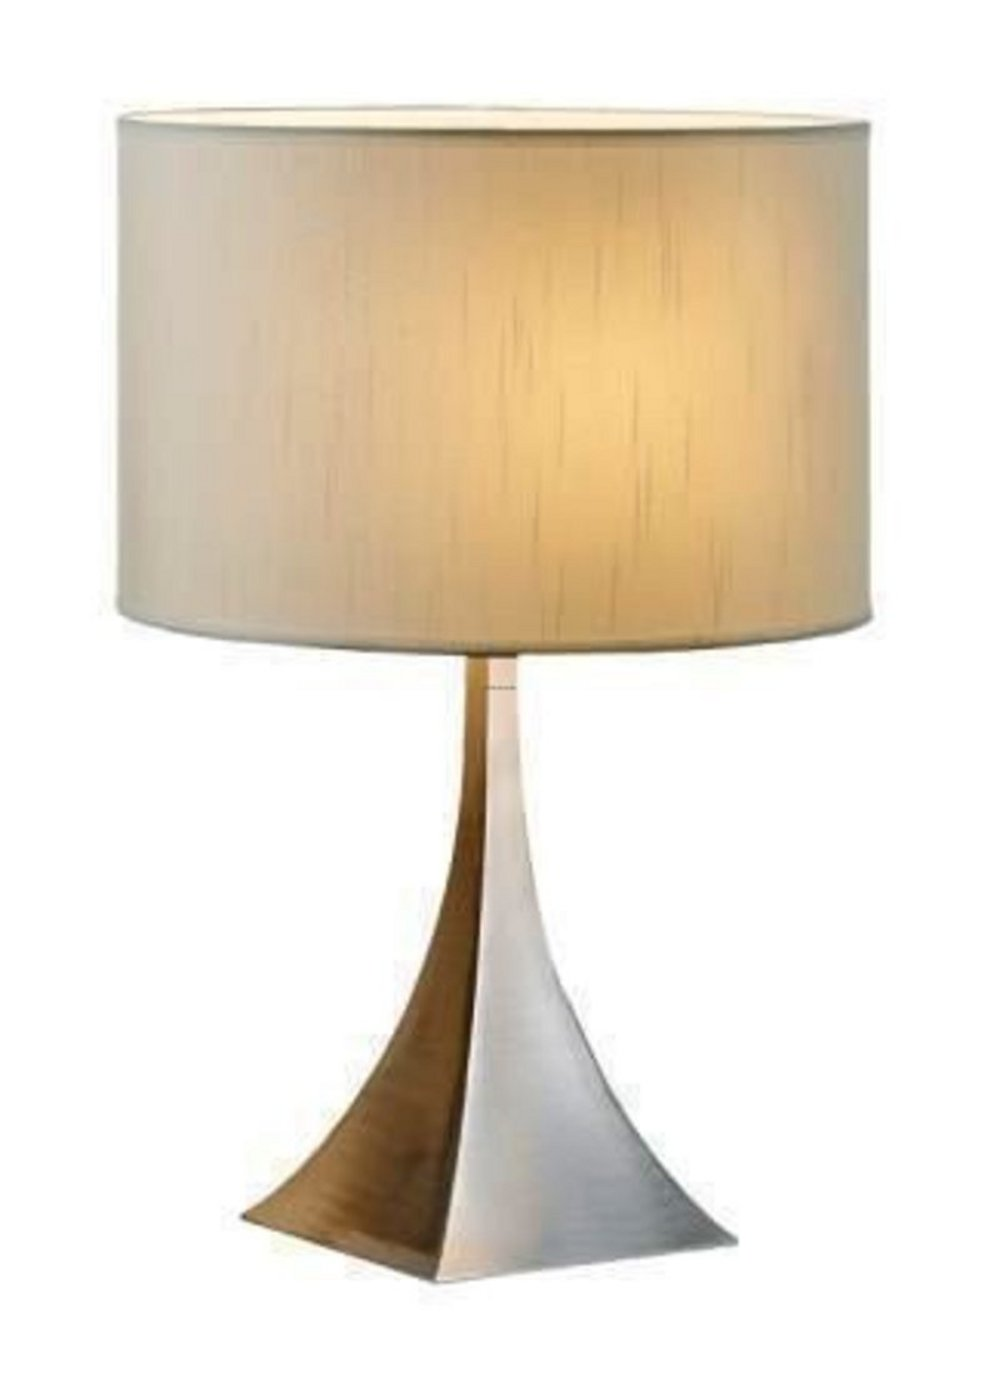 Ikea table lamp feel the home for Images of table lamps